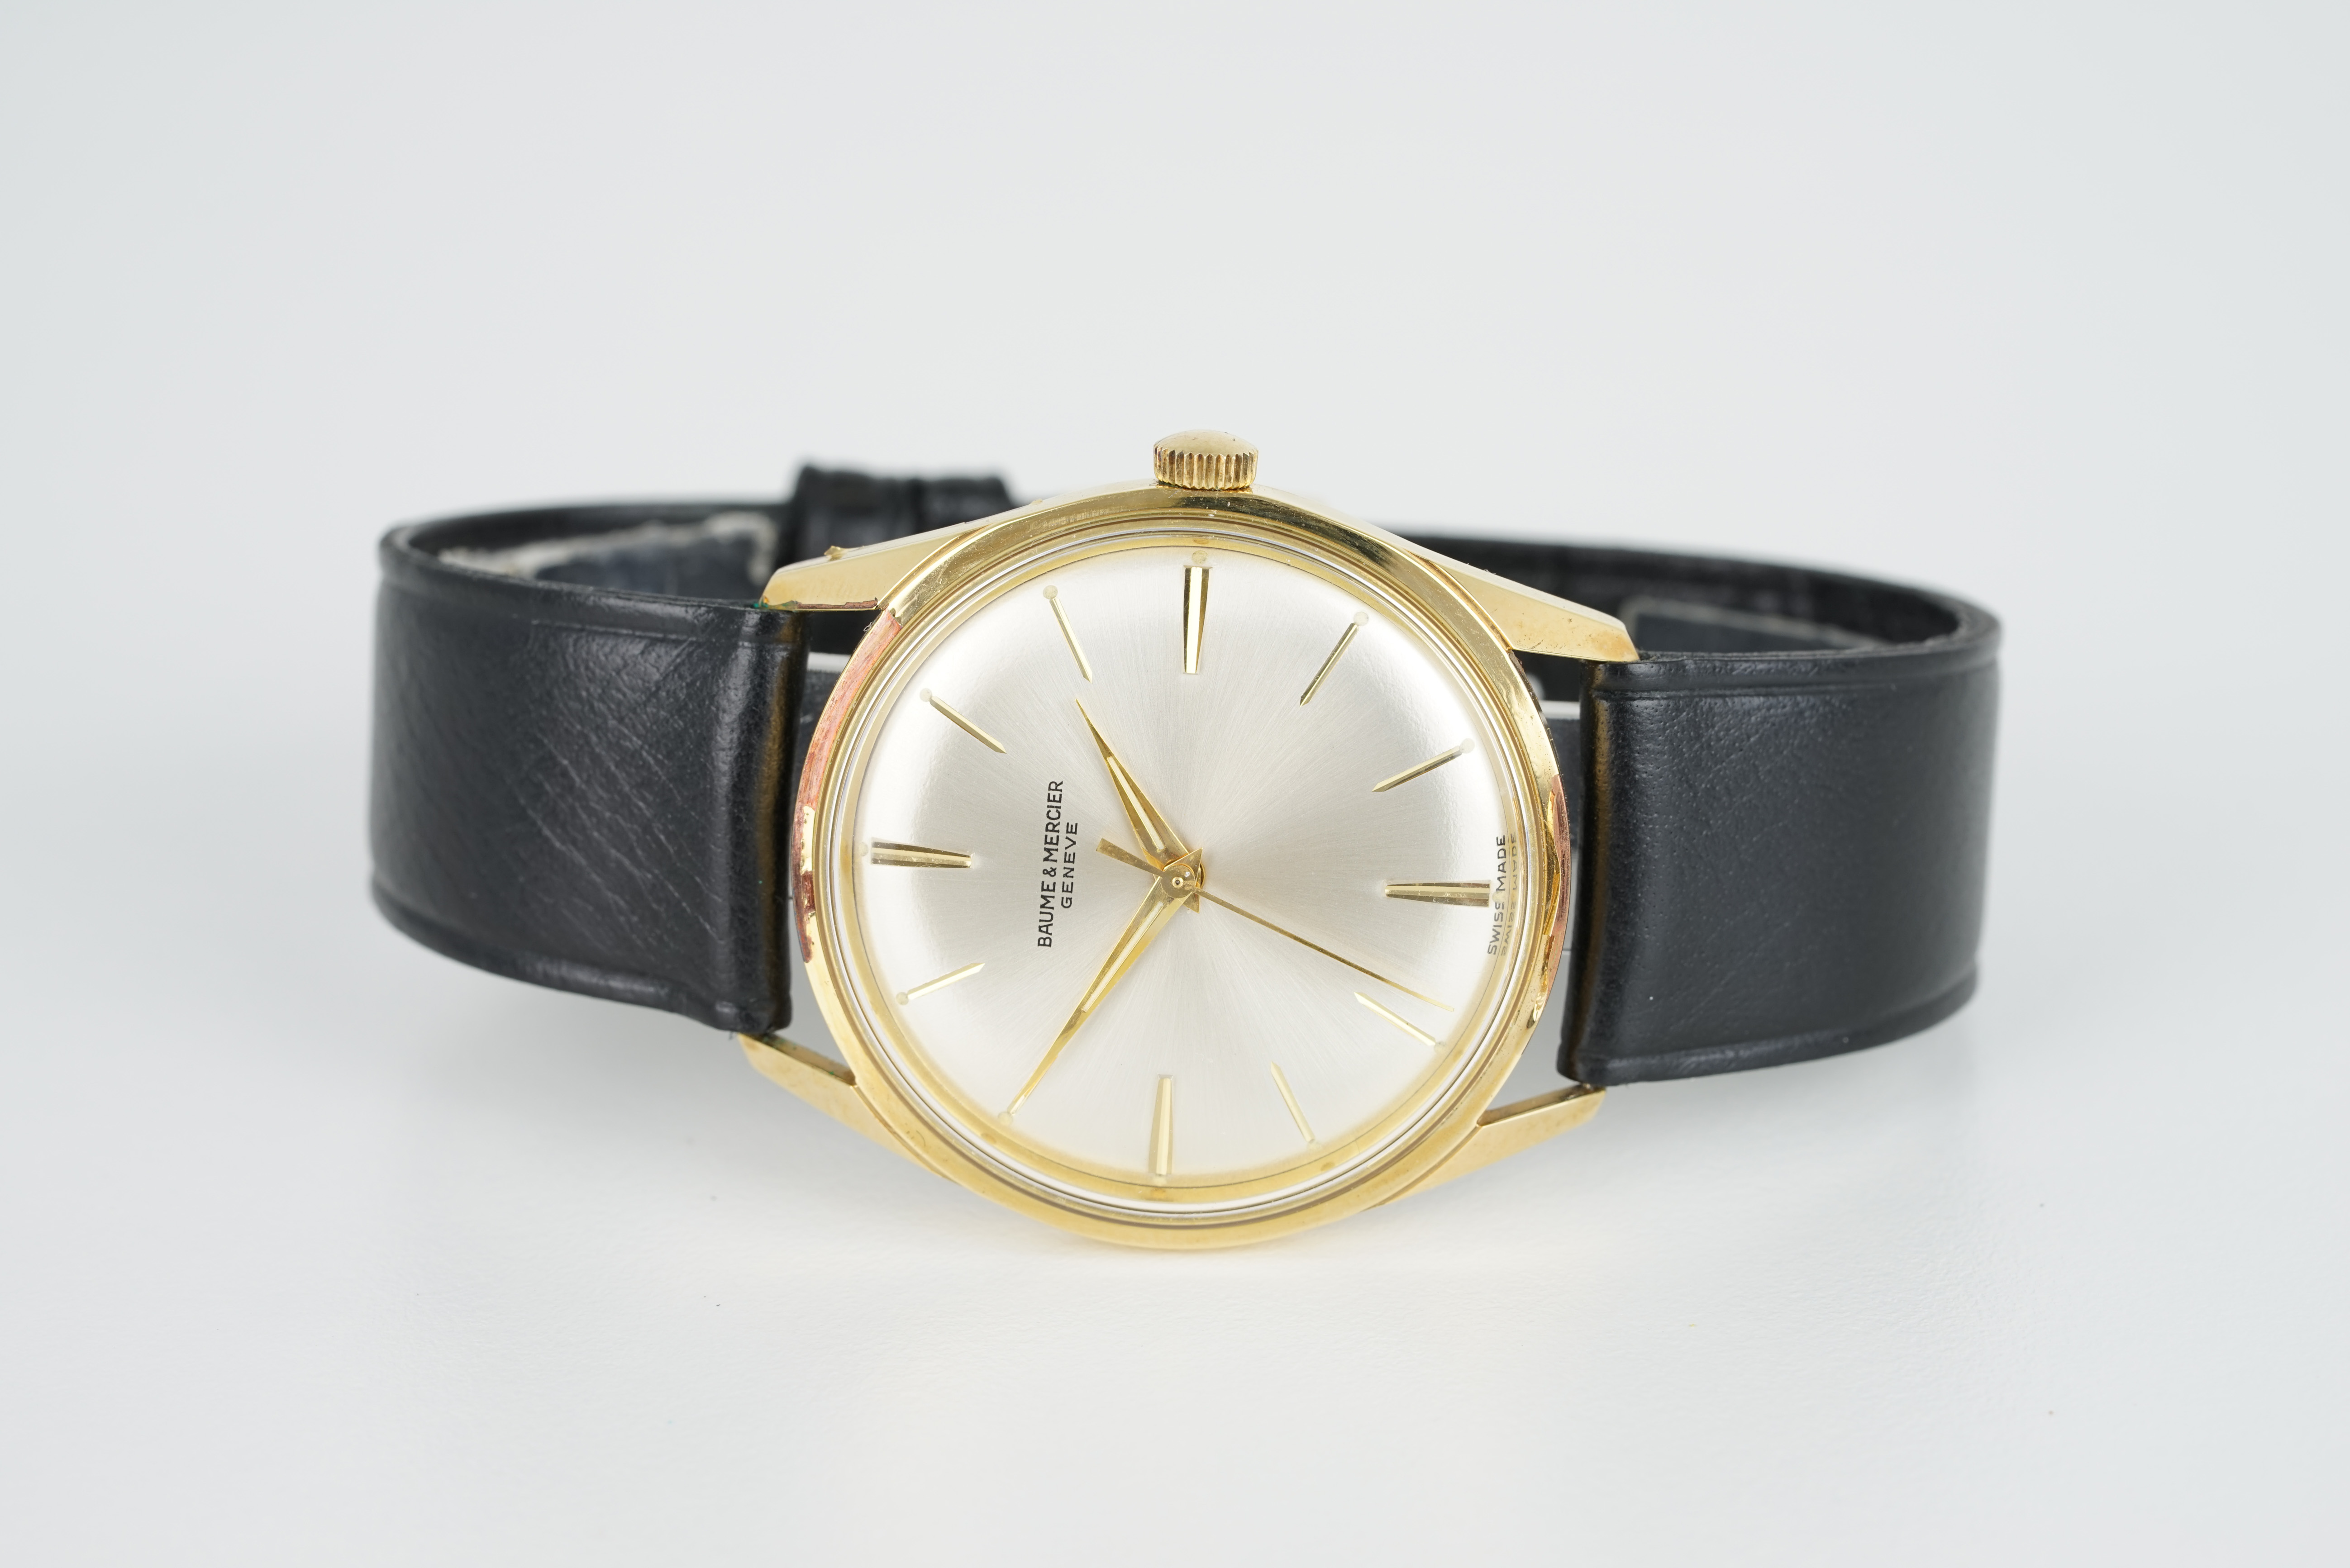 GENTLEMENS BAUME & MERCIER WRISTWATCH, circular silver dial with stick hour markers and hands,